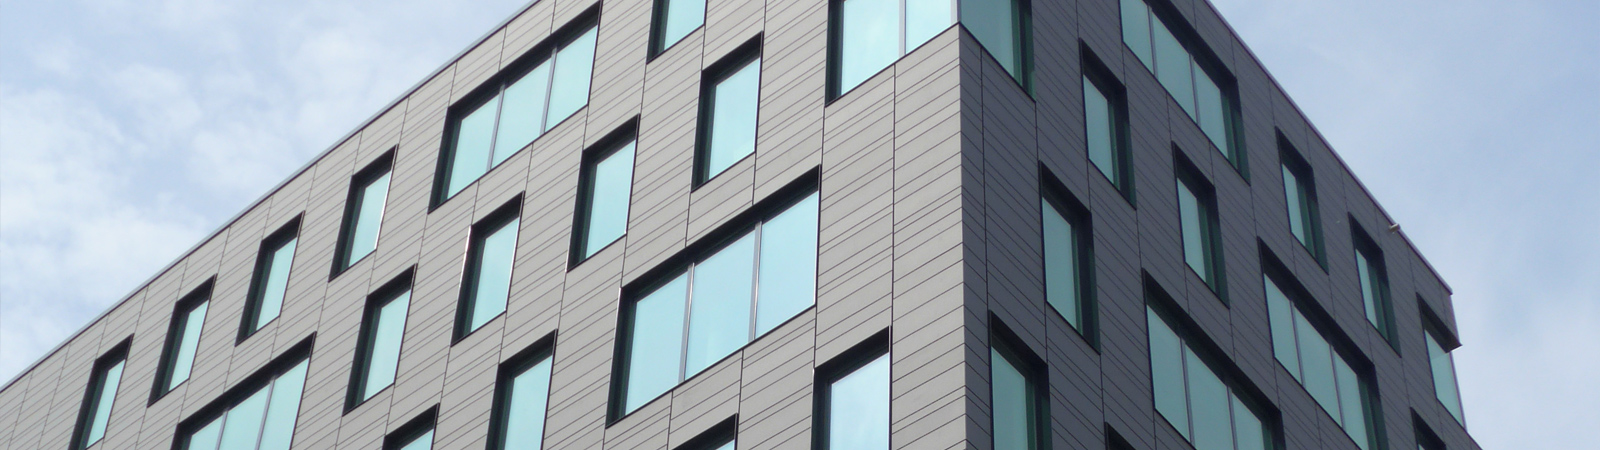 Architecture with powdercoated windows